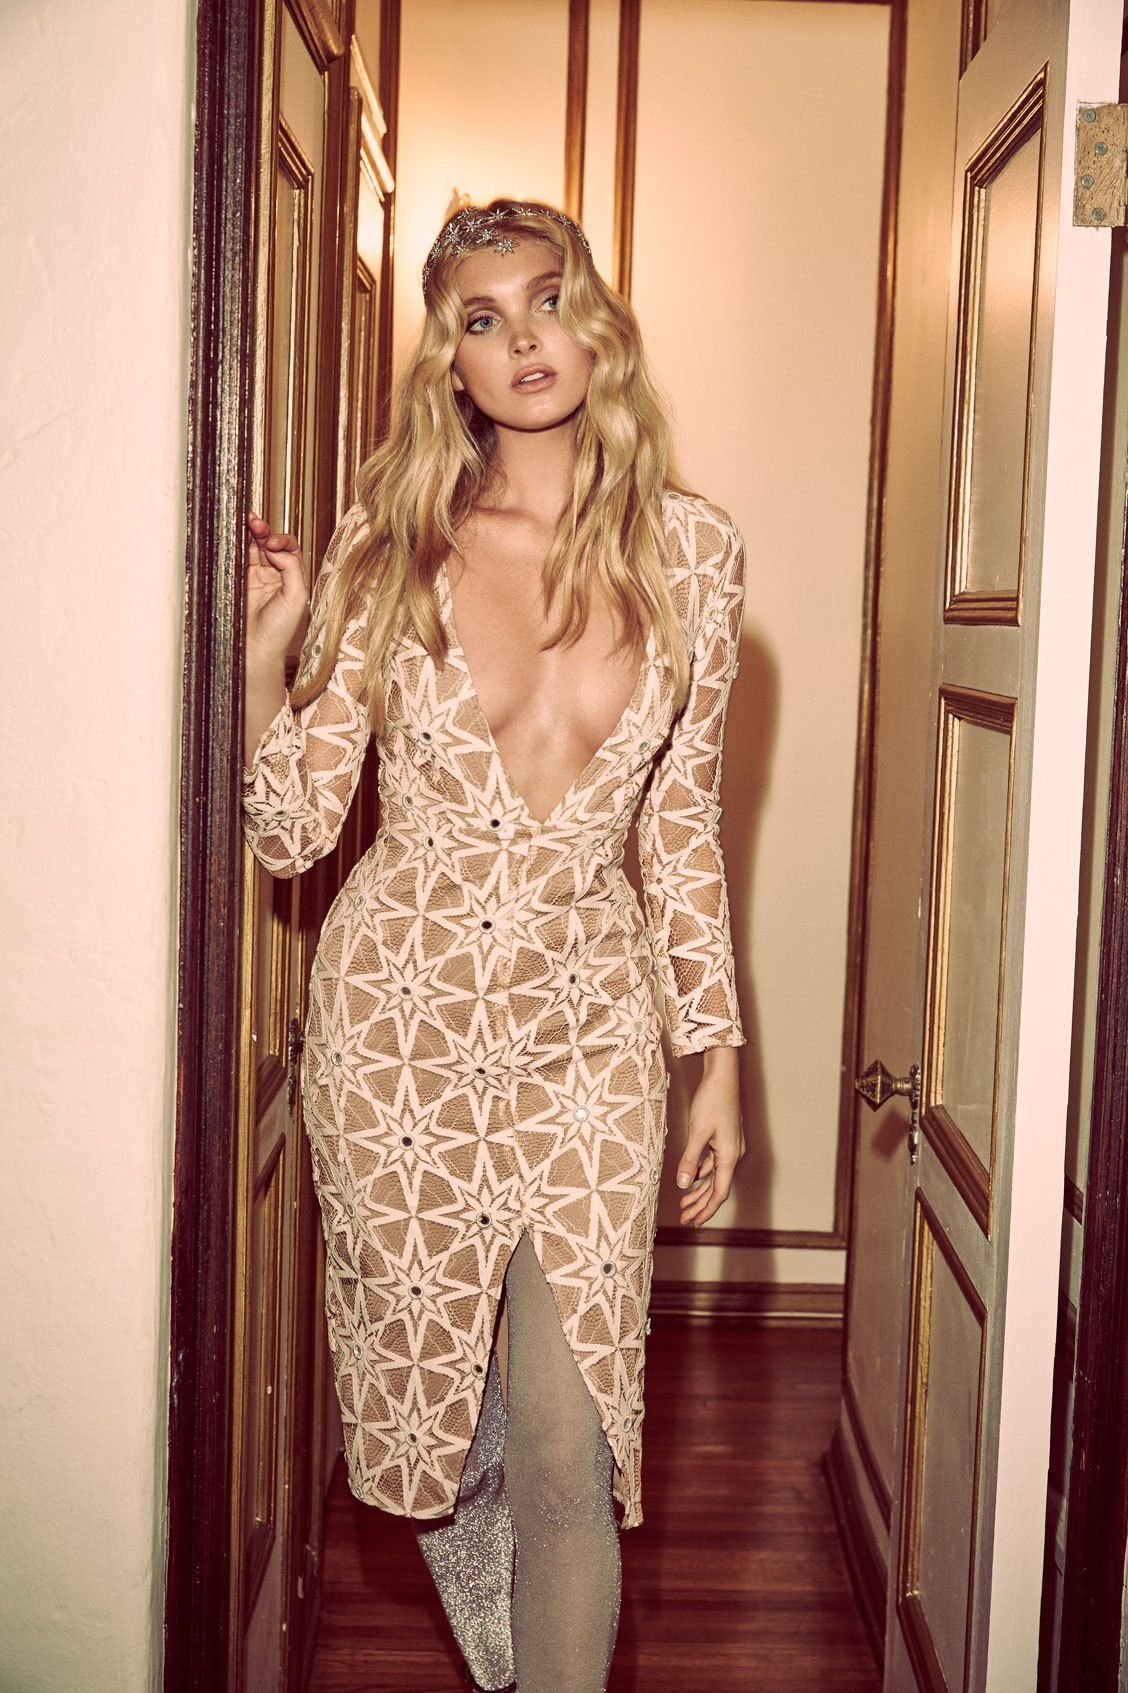 Sexy Photos Of Elsa Hosk